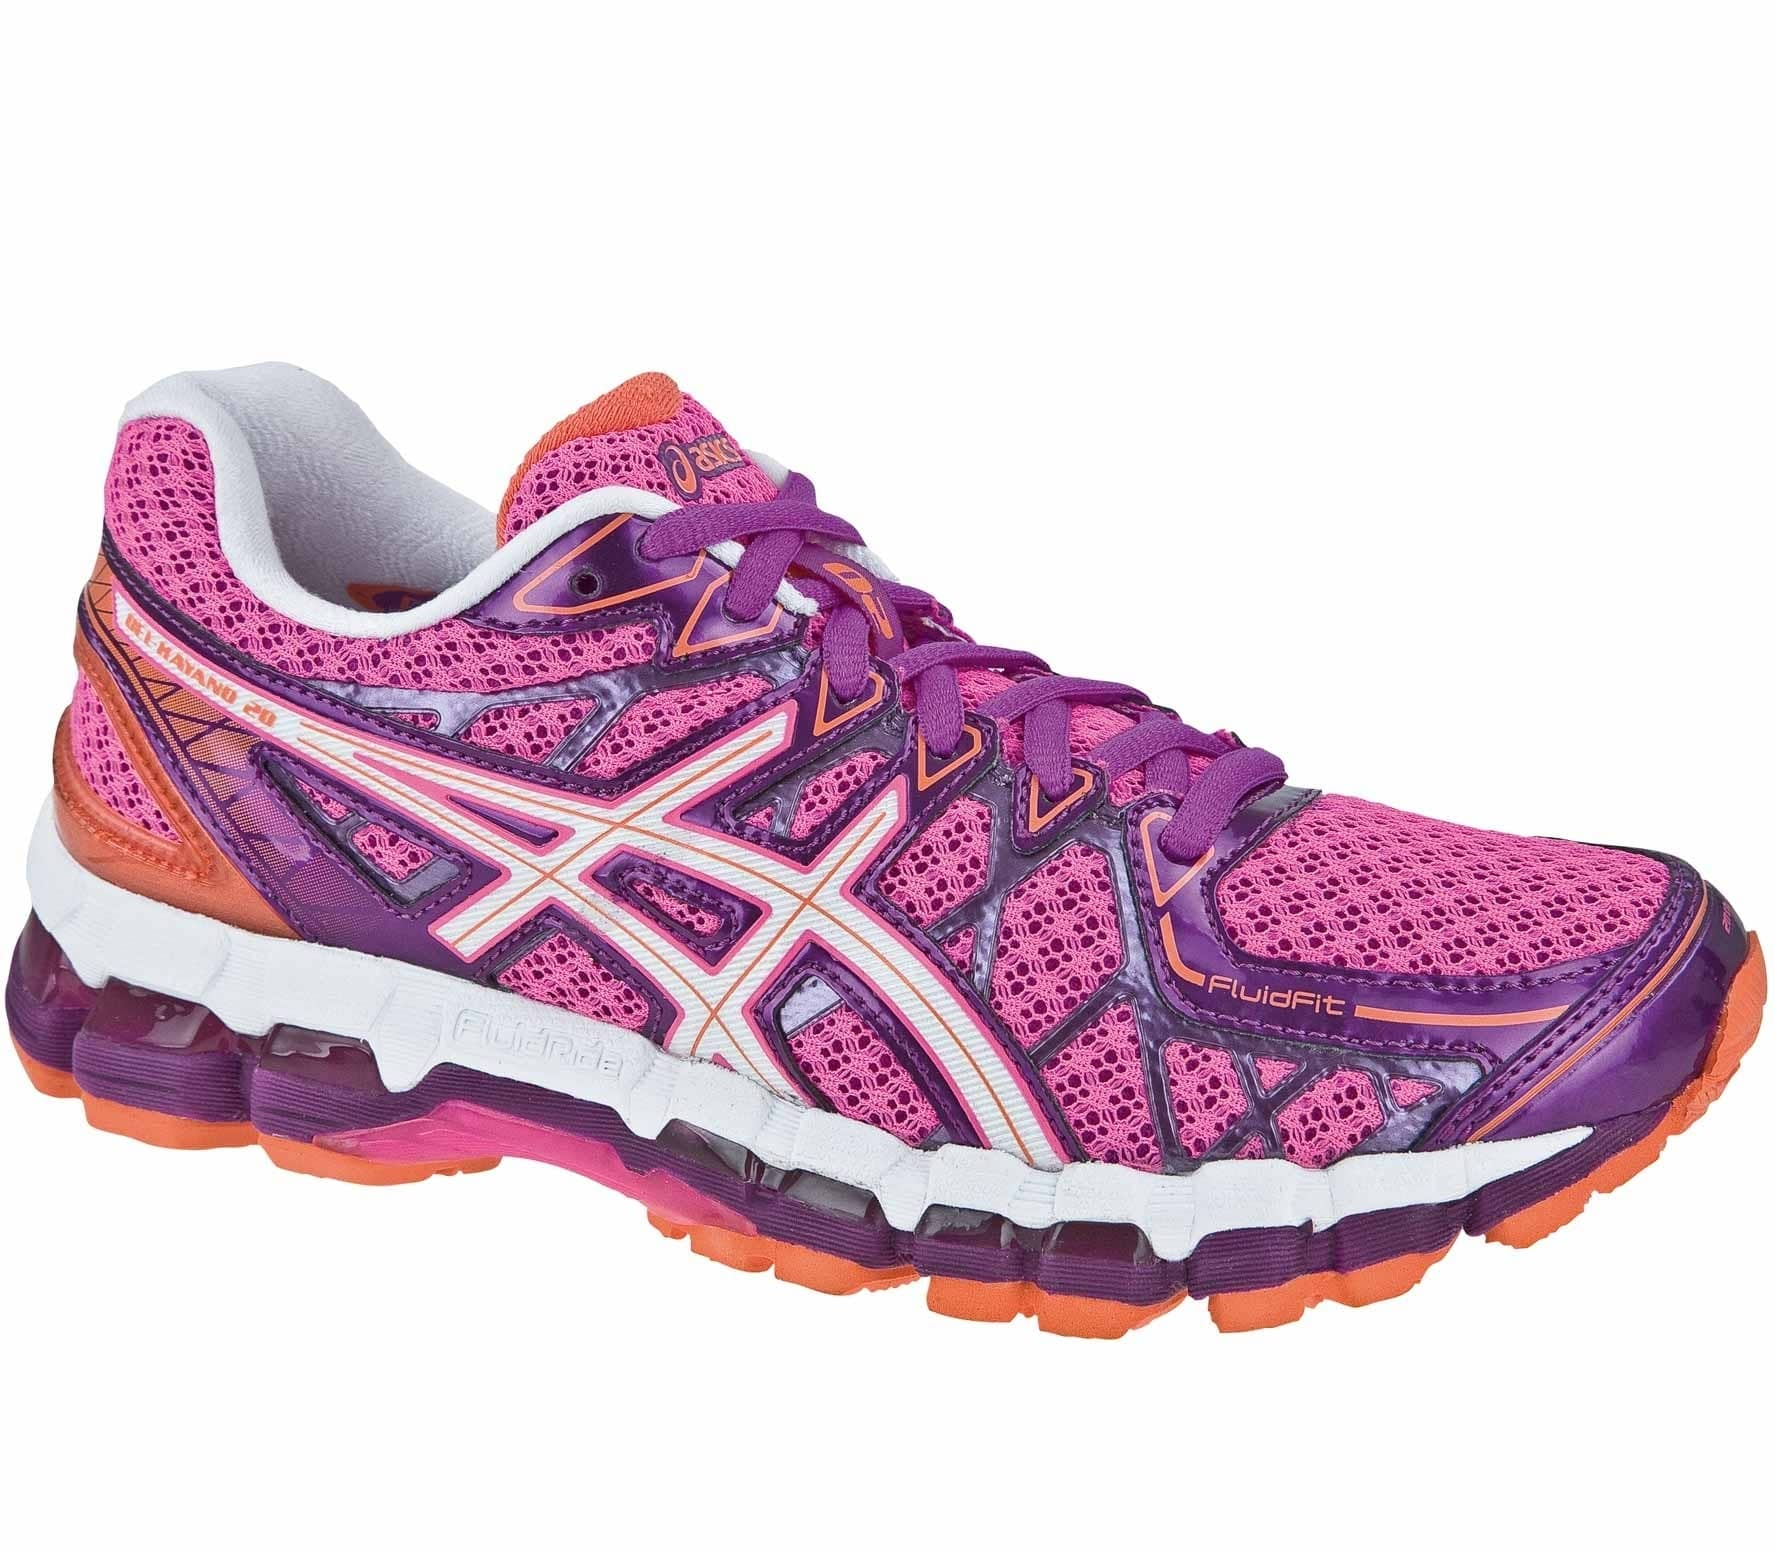 asics gel kayano 20 damen laufschuhe pink wei im online. Black Bedroom Furniture Sets. Home Design Ideas